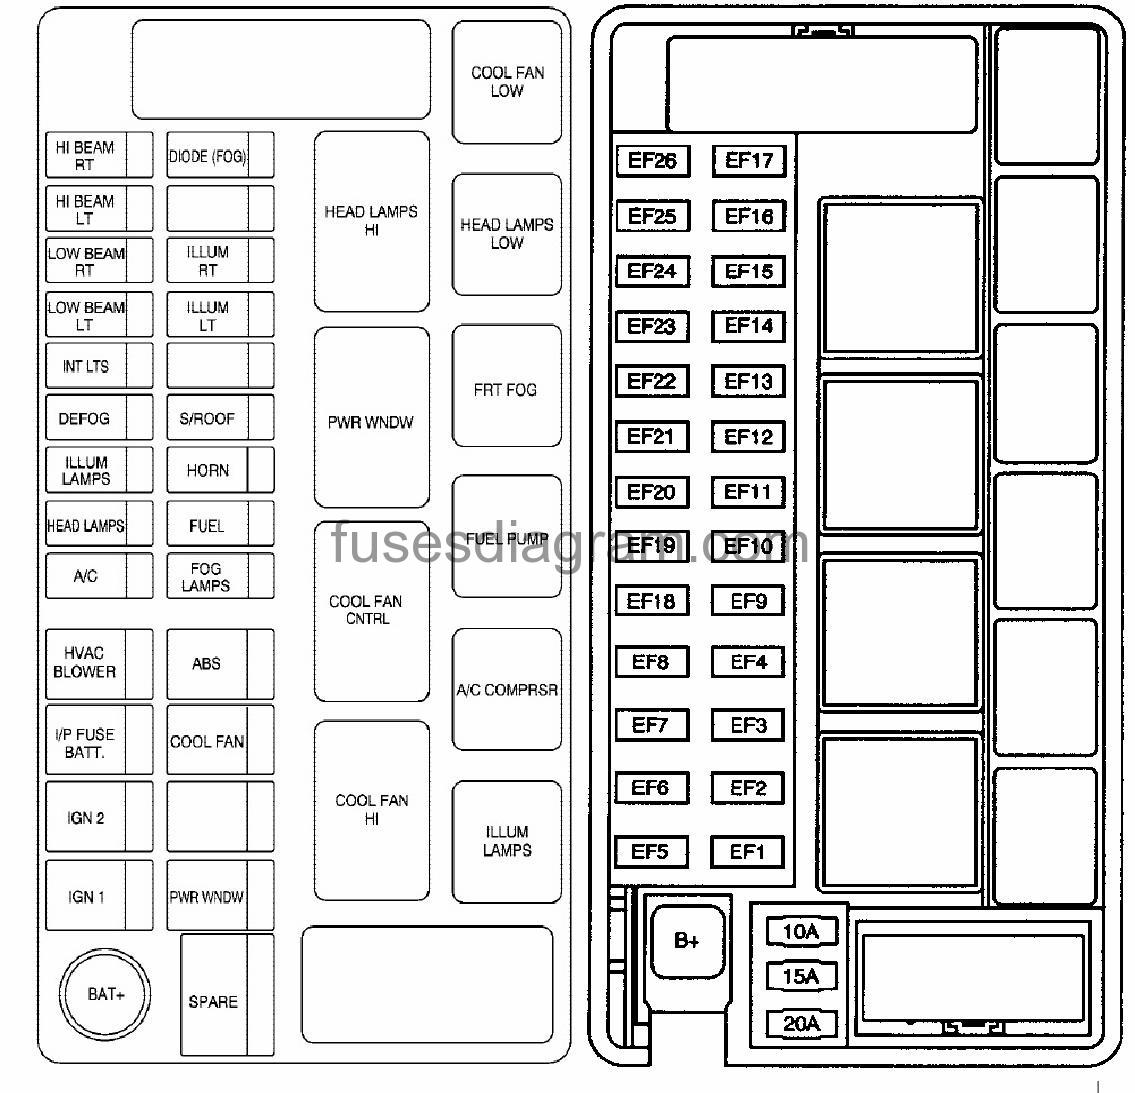 fuse box chevrolet aveo repair manual daewoo kalos daewoo kalos fuse box location #25